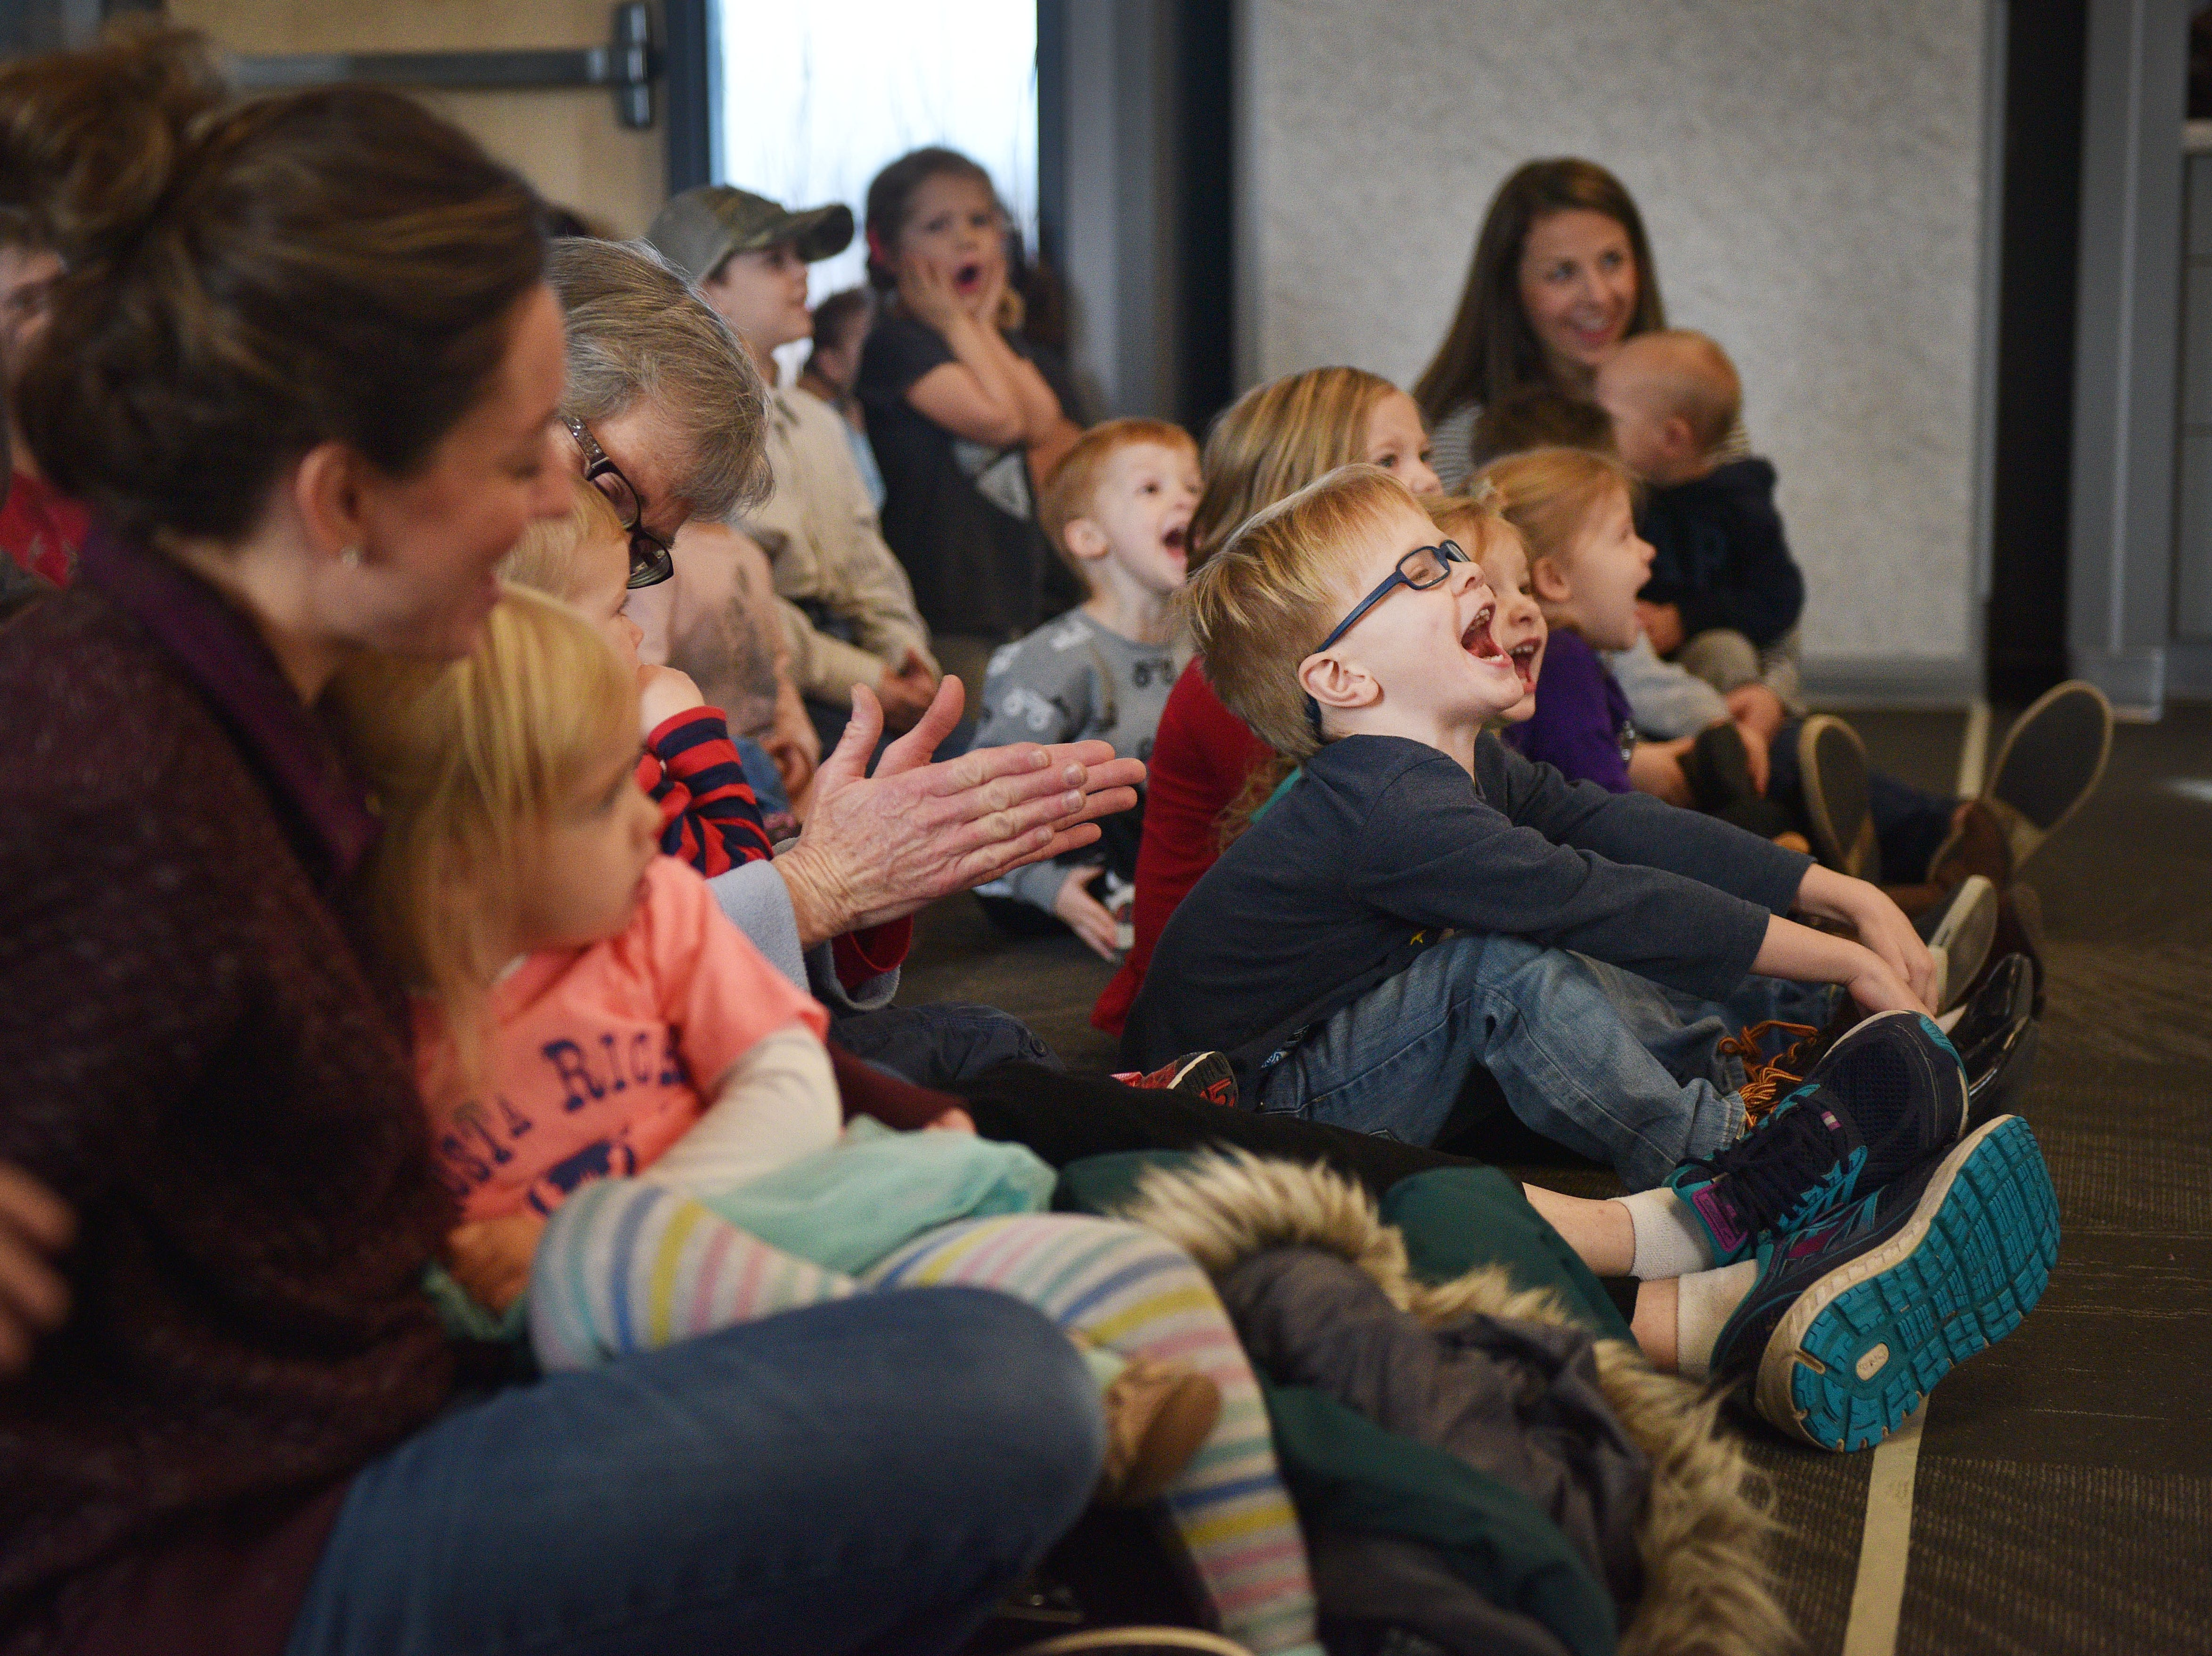 Gavin Dewit, center, cheers for The Christmas Gift puppet show at the Prairie West Branch Wednesday, Dec. 5, in Sioux Falls.